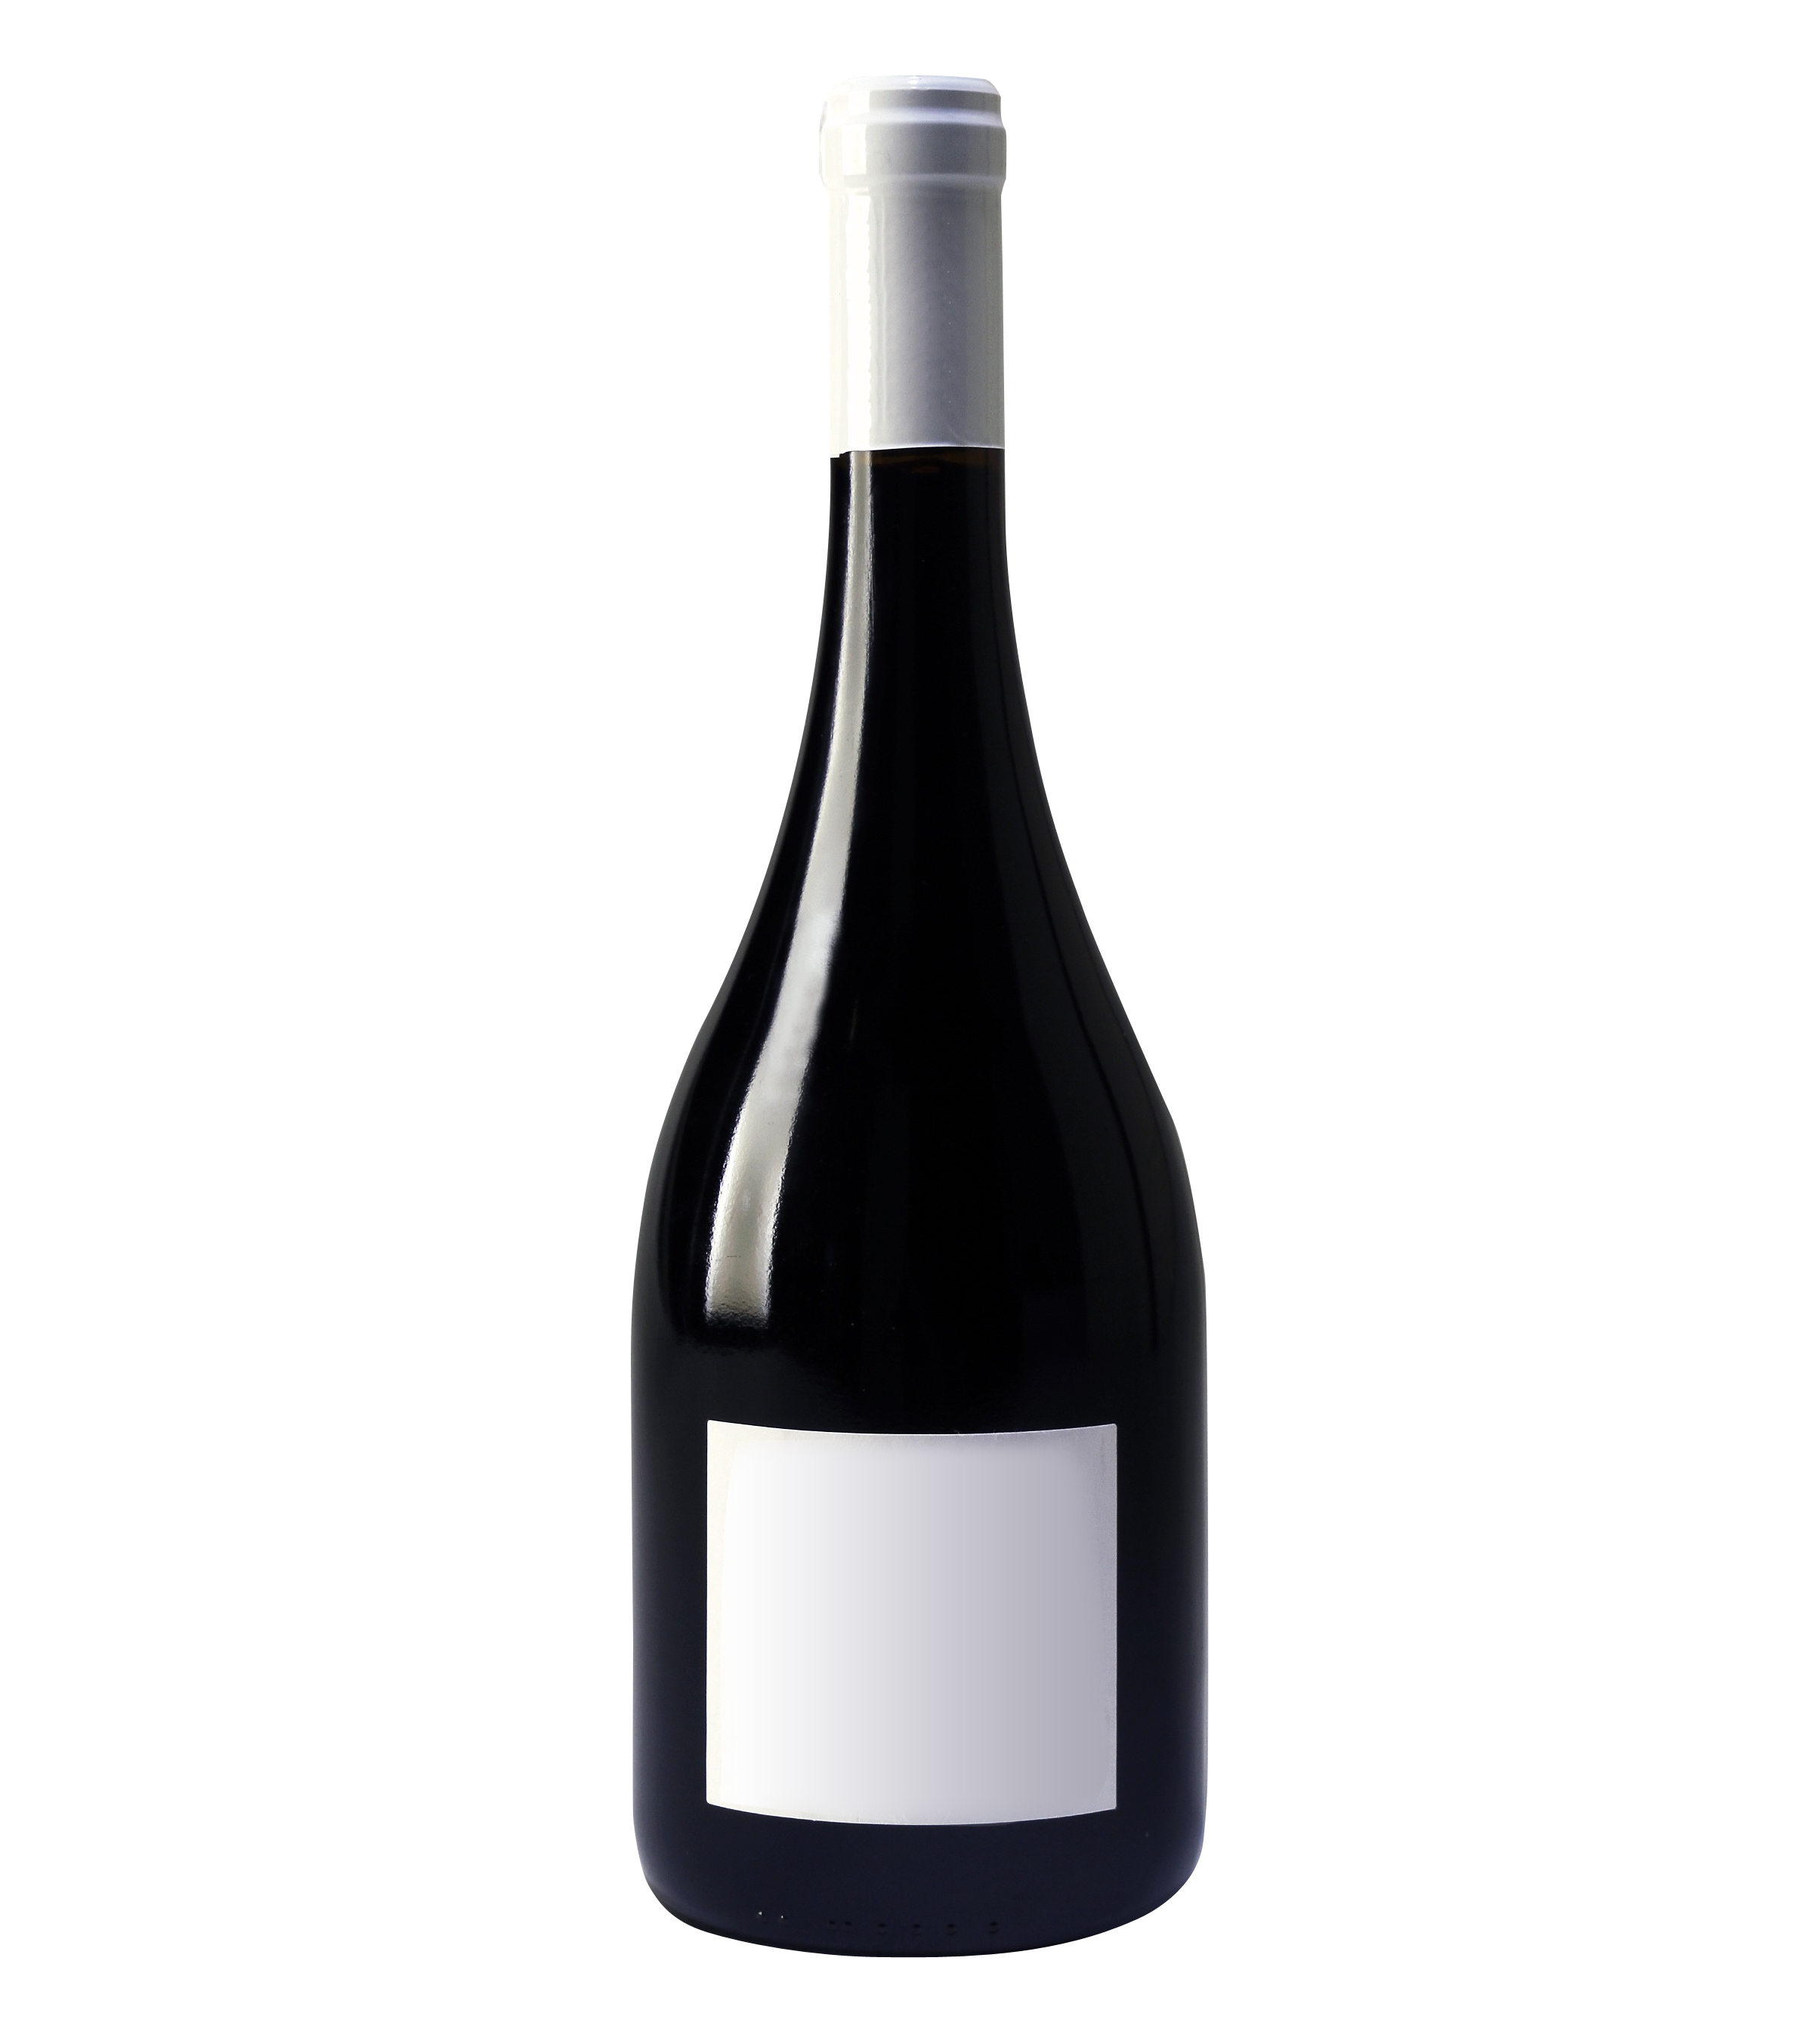 Wine image purepng free. Liquor bottle png black and white library